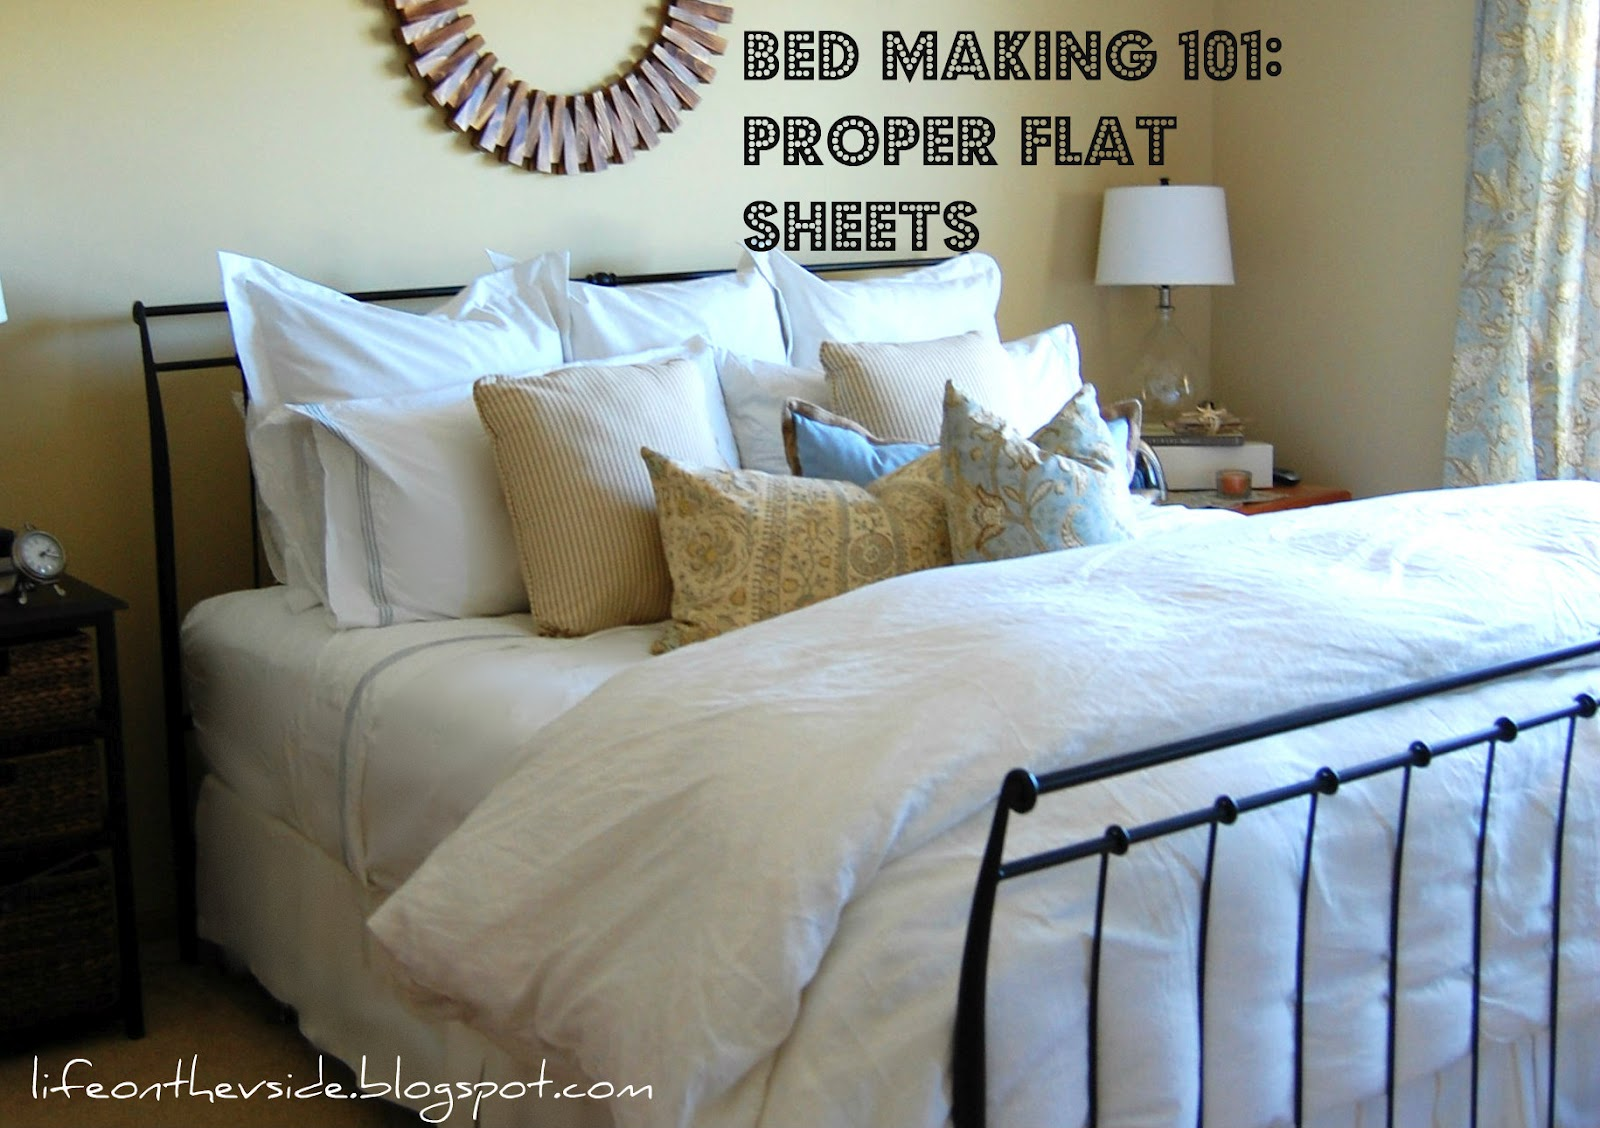 Bed Making 101 The Great Debate And Skinny On Sheets Which Way Does Flat Sheet Go